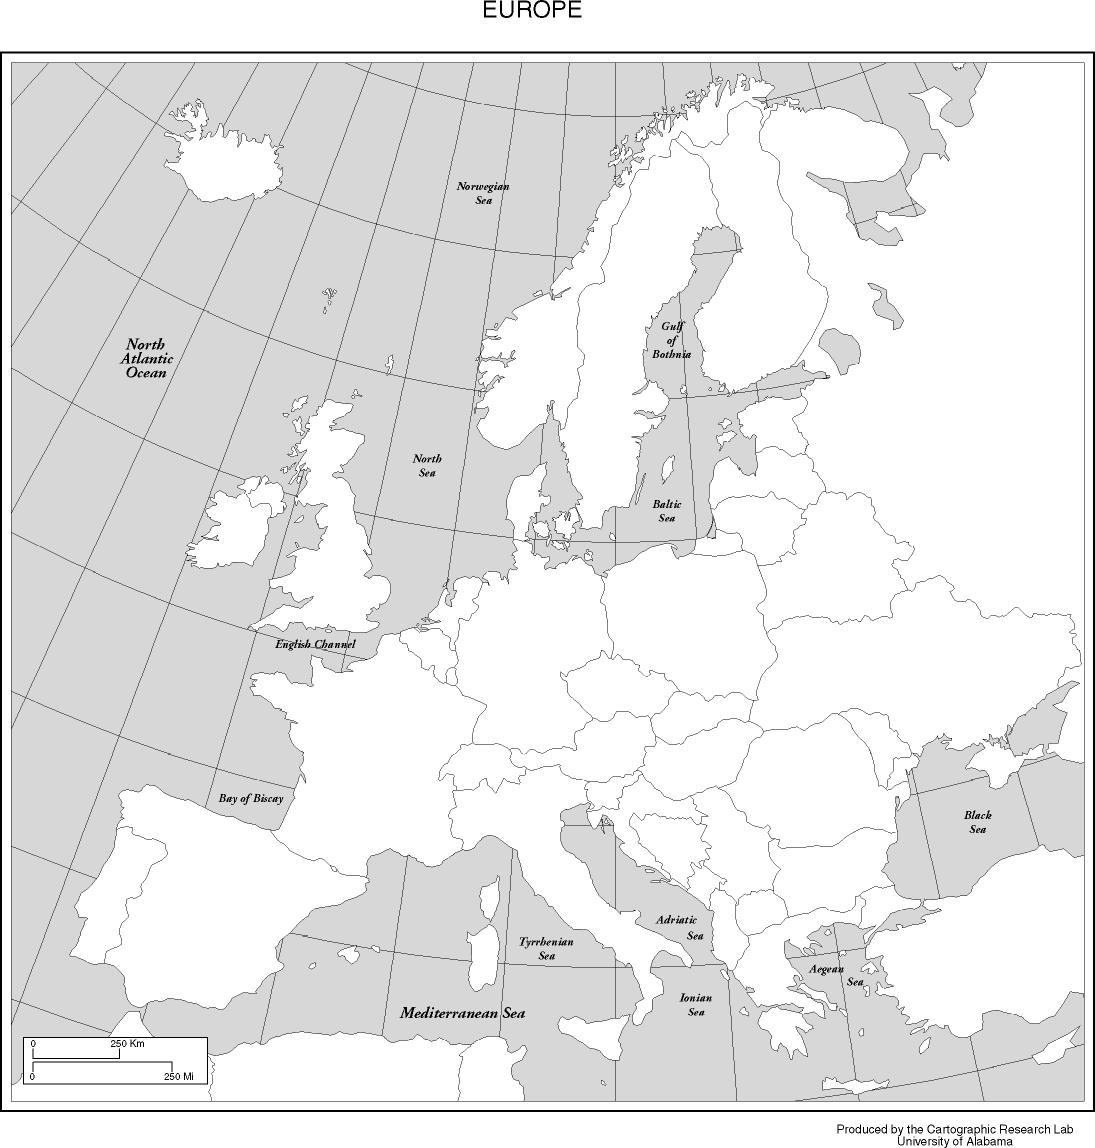 UML Course Wikis Blank map of Europe for study reference